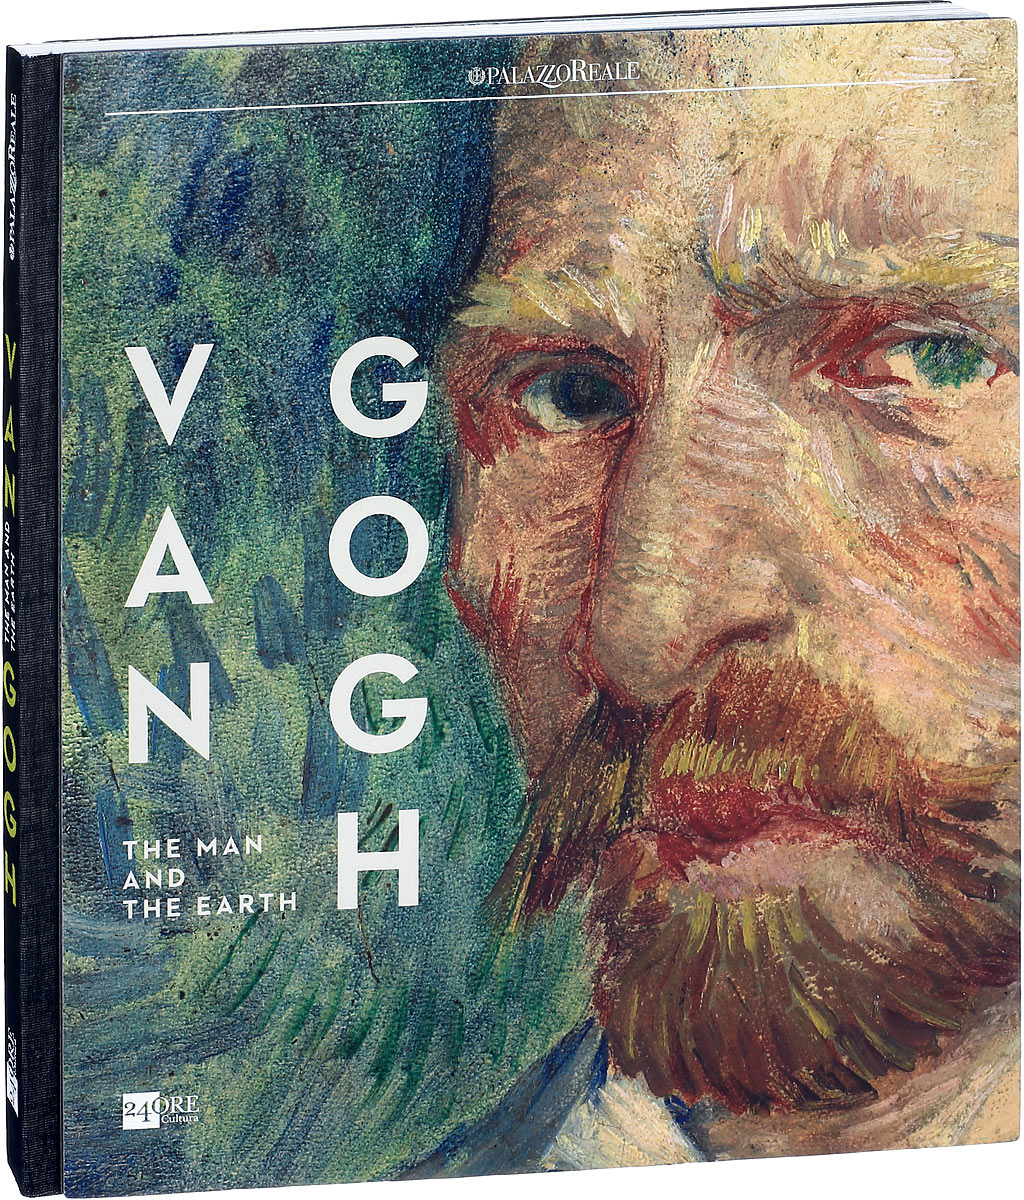 Van Gogh: The Man and the Earth van gogh the man and the earth